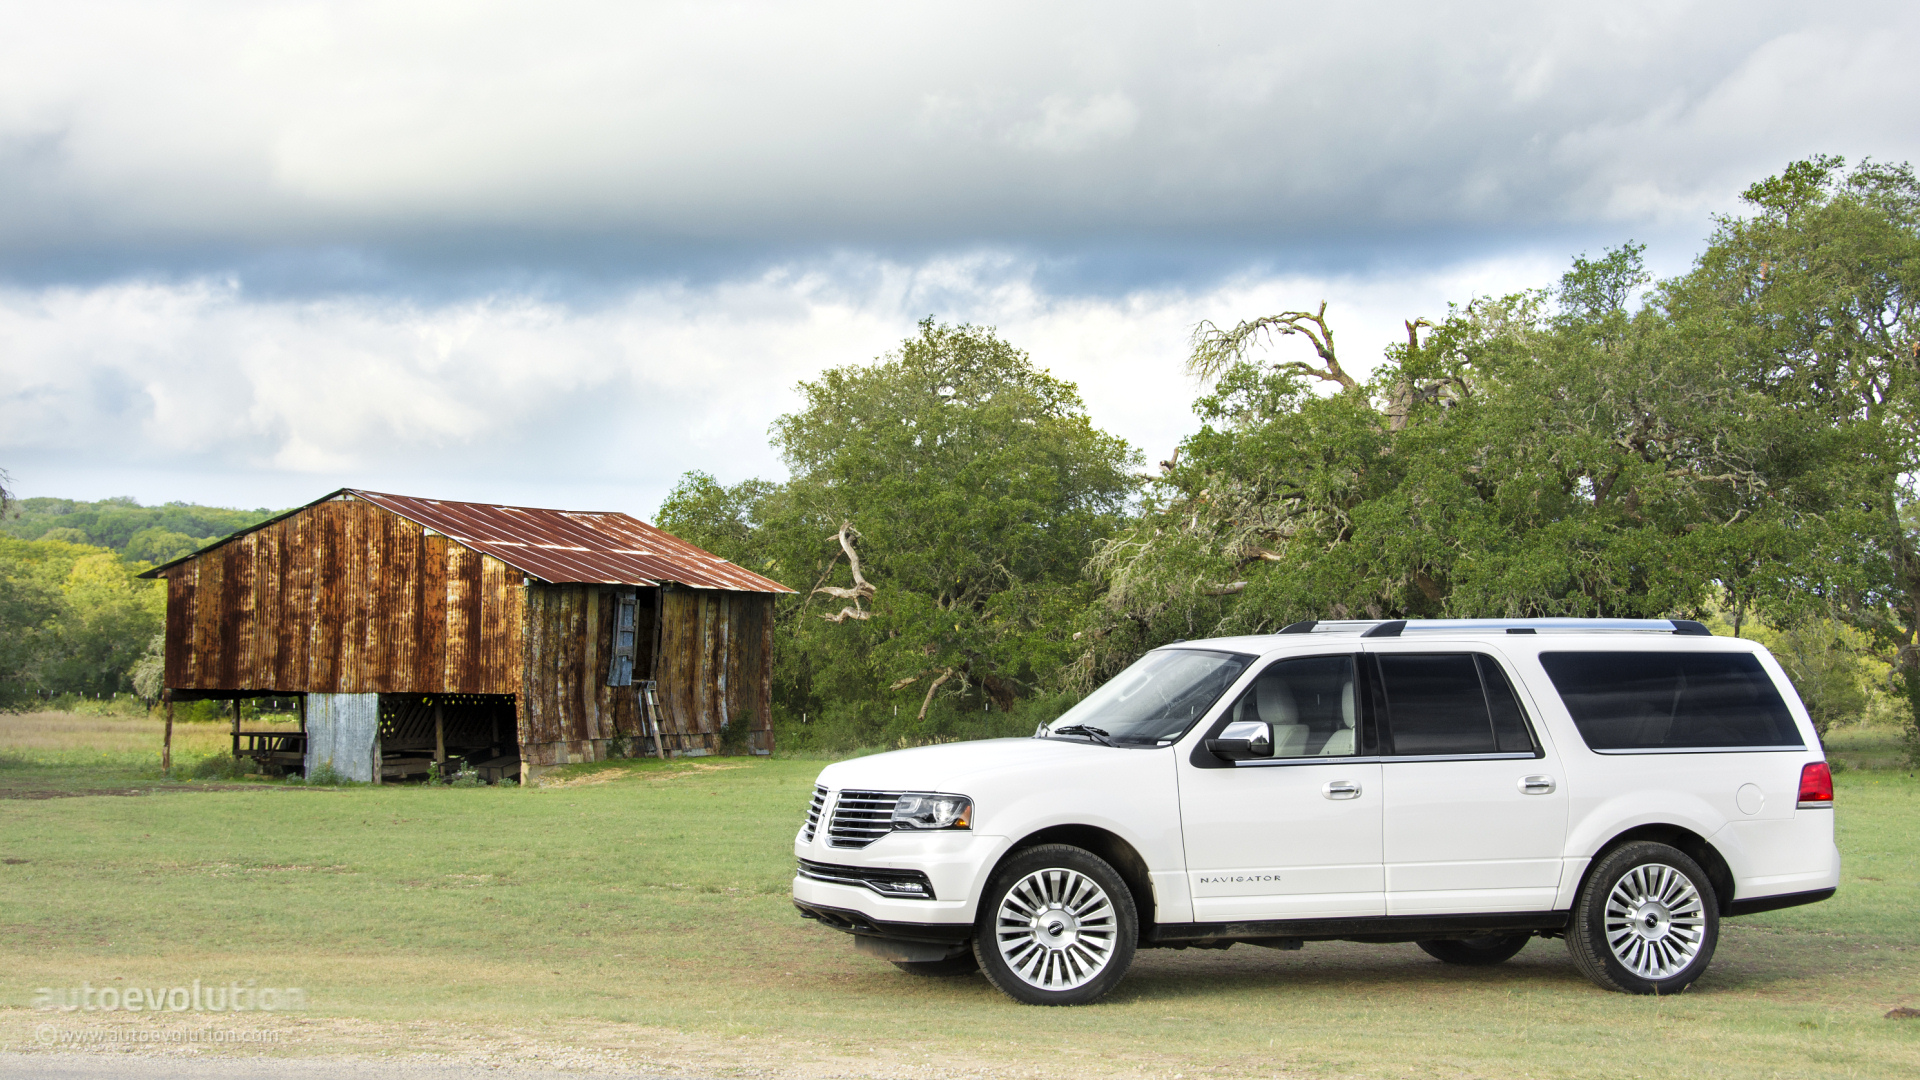 2015 Lincoln Navigator Wallpapers For Your Valentine   autoevolution 1920x1080